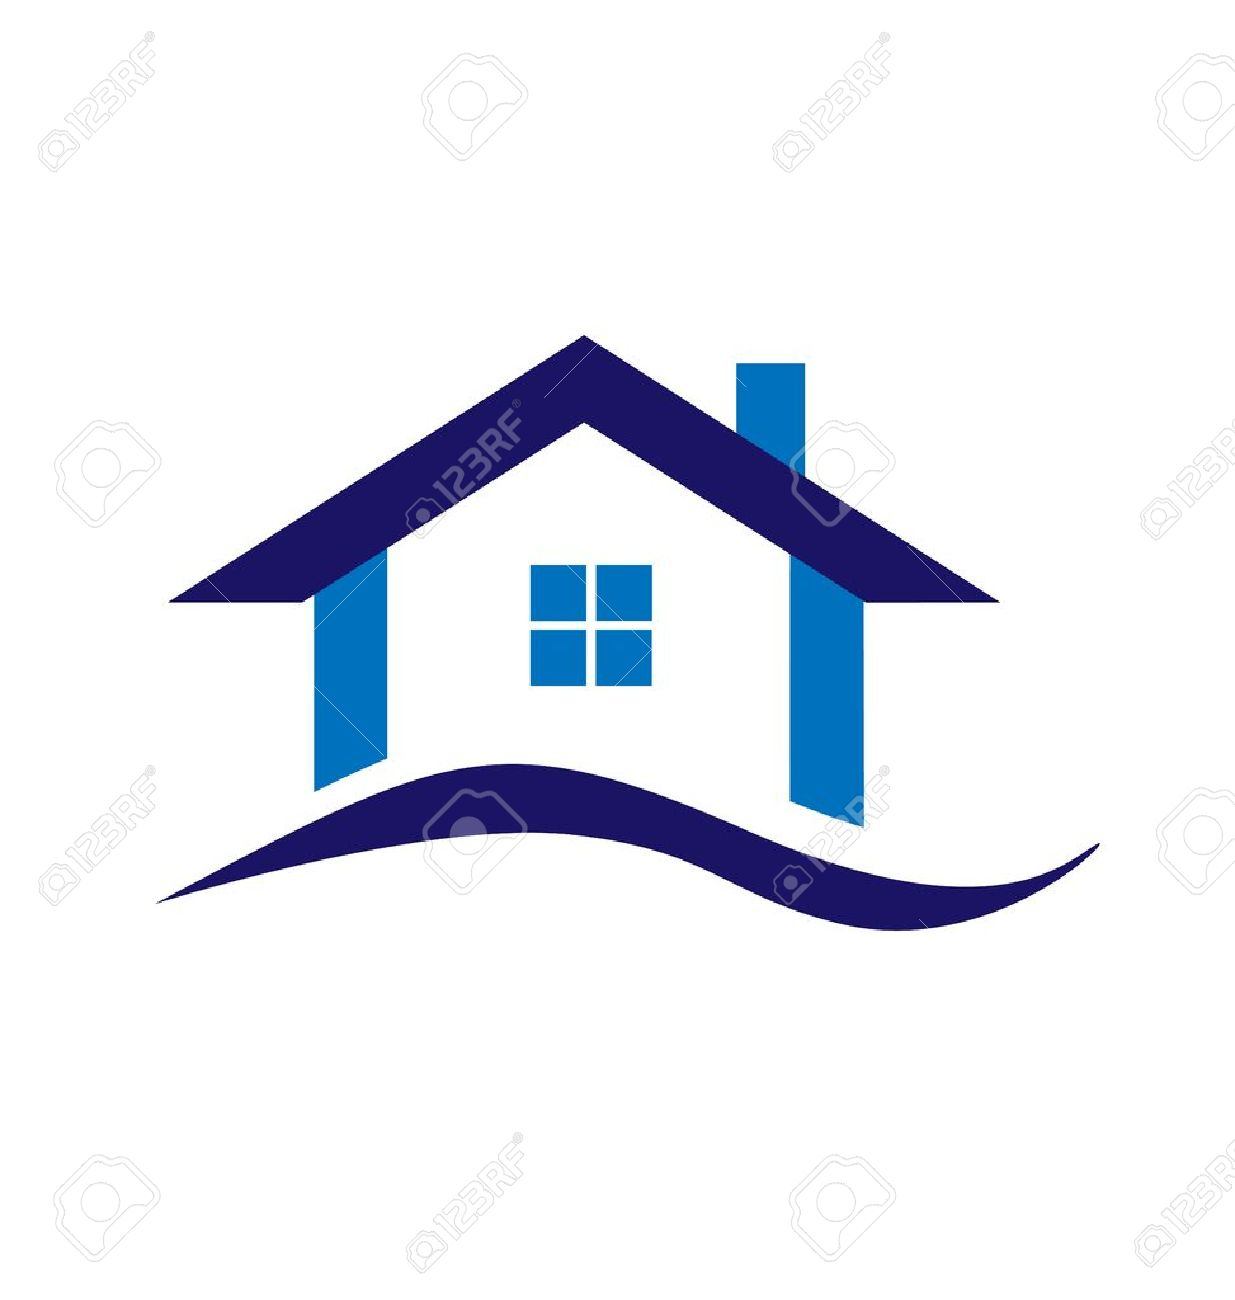 Real Estate Blue House Logo Business Design Royalty Free Cliparts ...